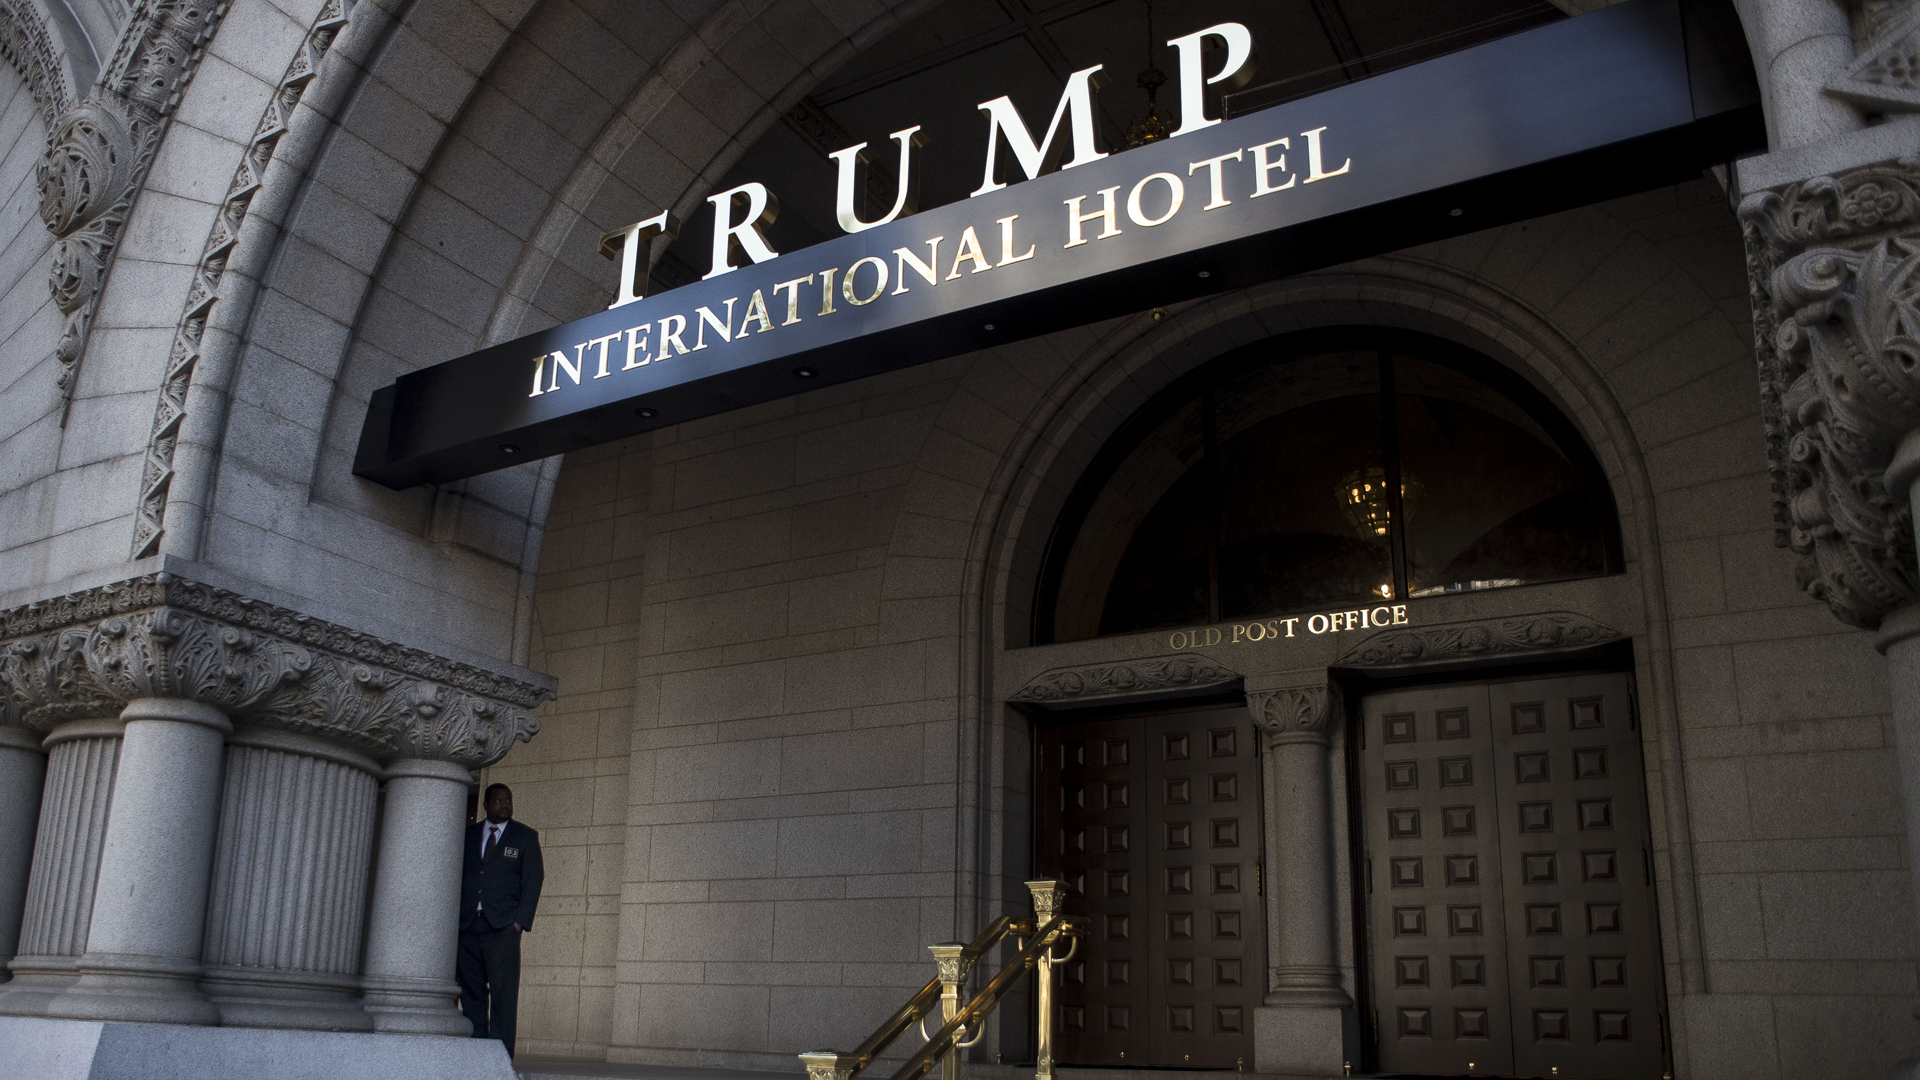 The Trump International Hotel at the old post office is seen on on Oct. 26, 2016, in Washington, D.C. (Credit: Gabriella Demczuk/Getty Images)